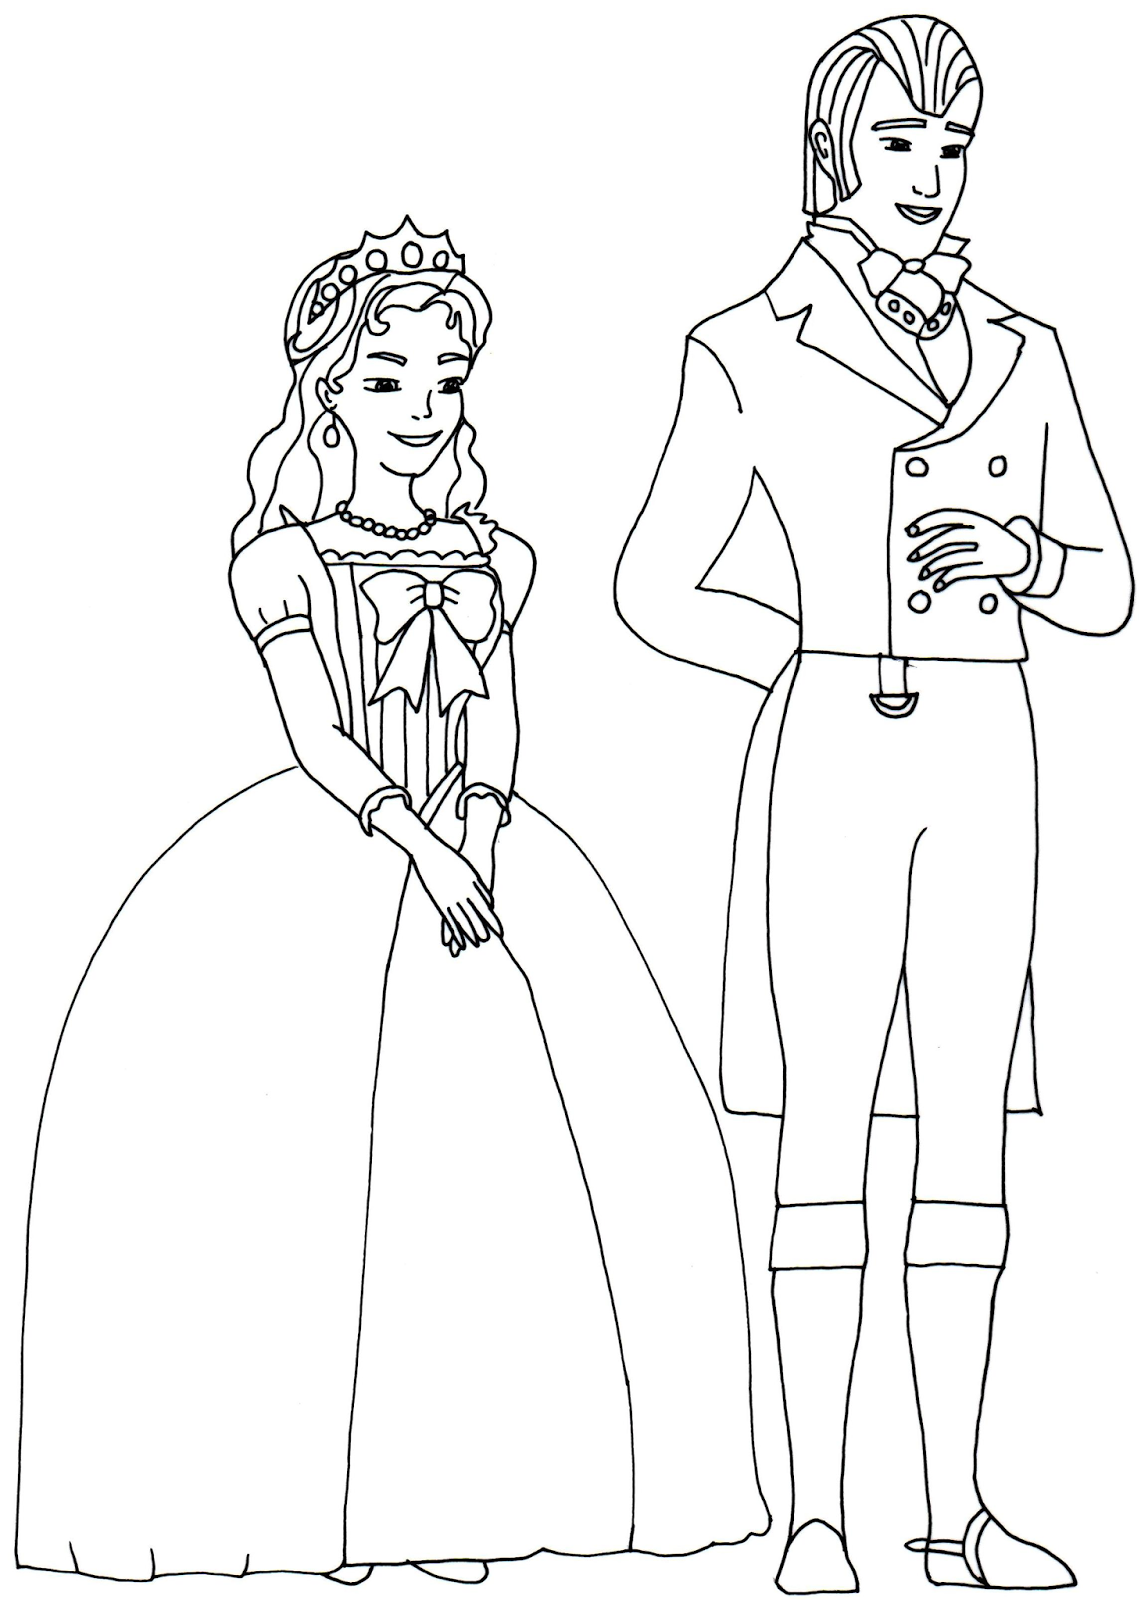 coloring pages king - sofia the first coloring pages april 2014